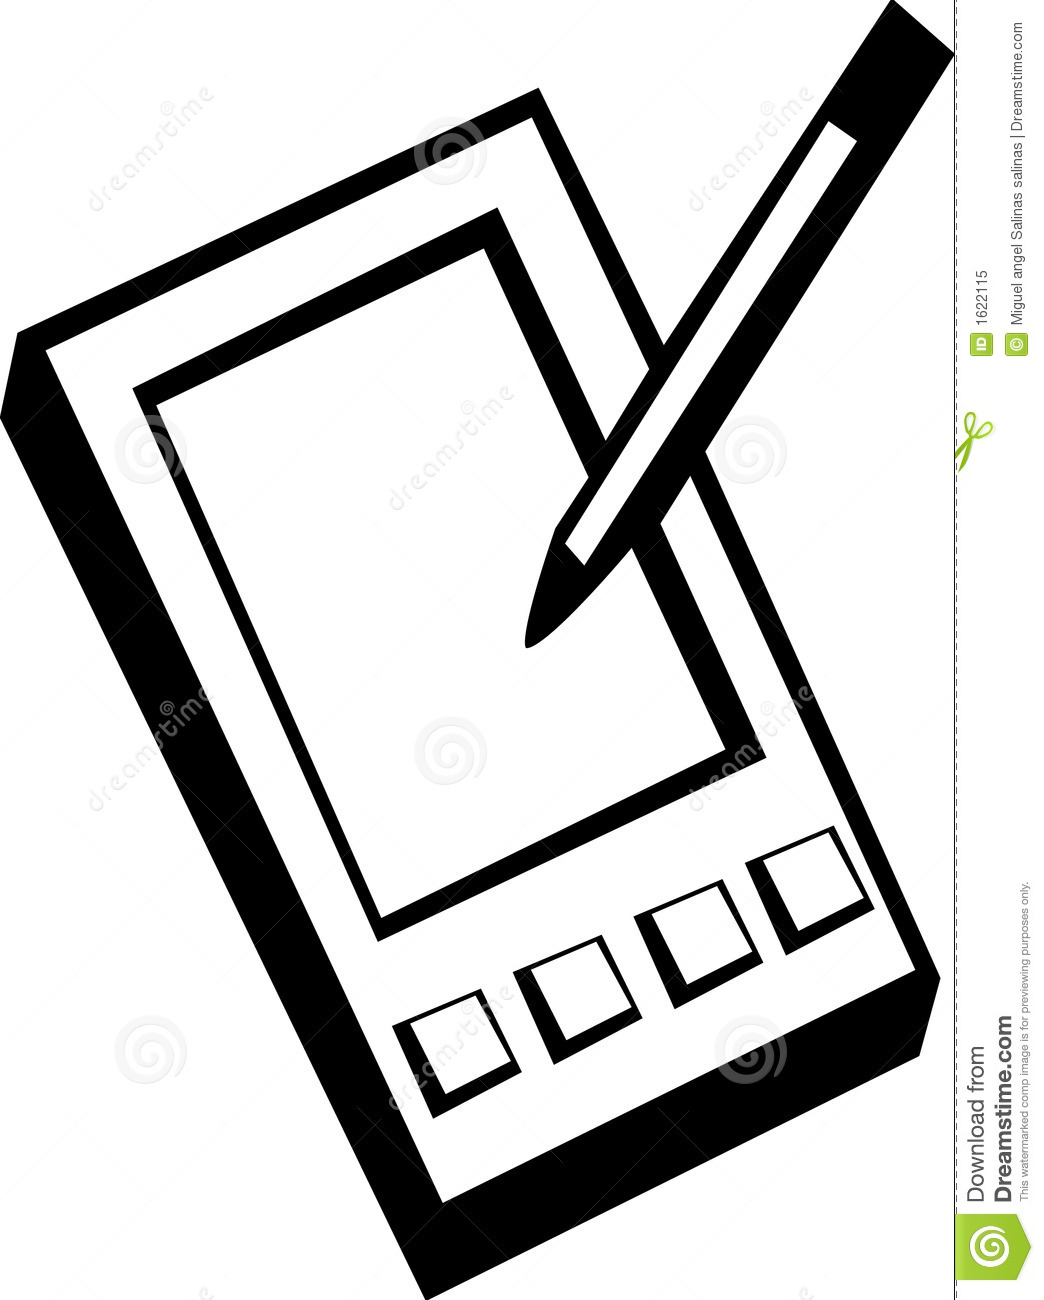 Pda Handheld Computer Vector Illustration Stock Vector